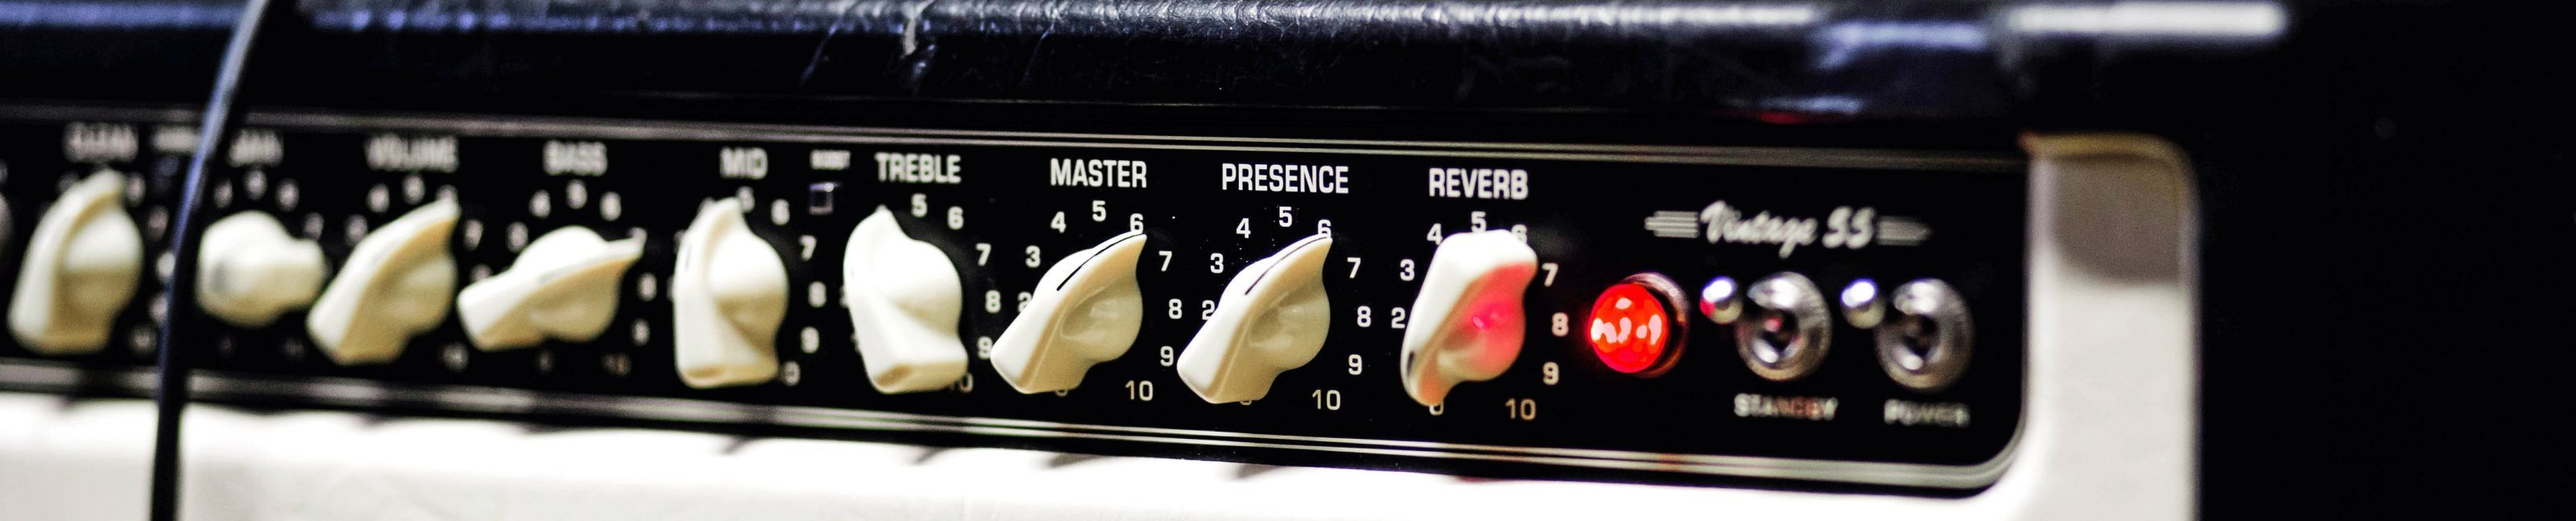 A modern guitar amp used for adding distortion and saturation to an electric guitar